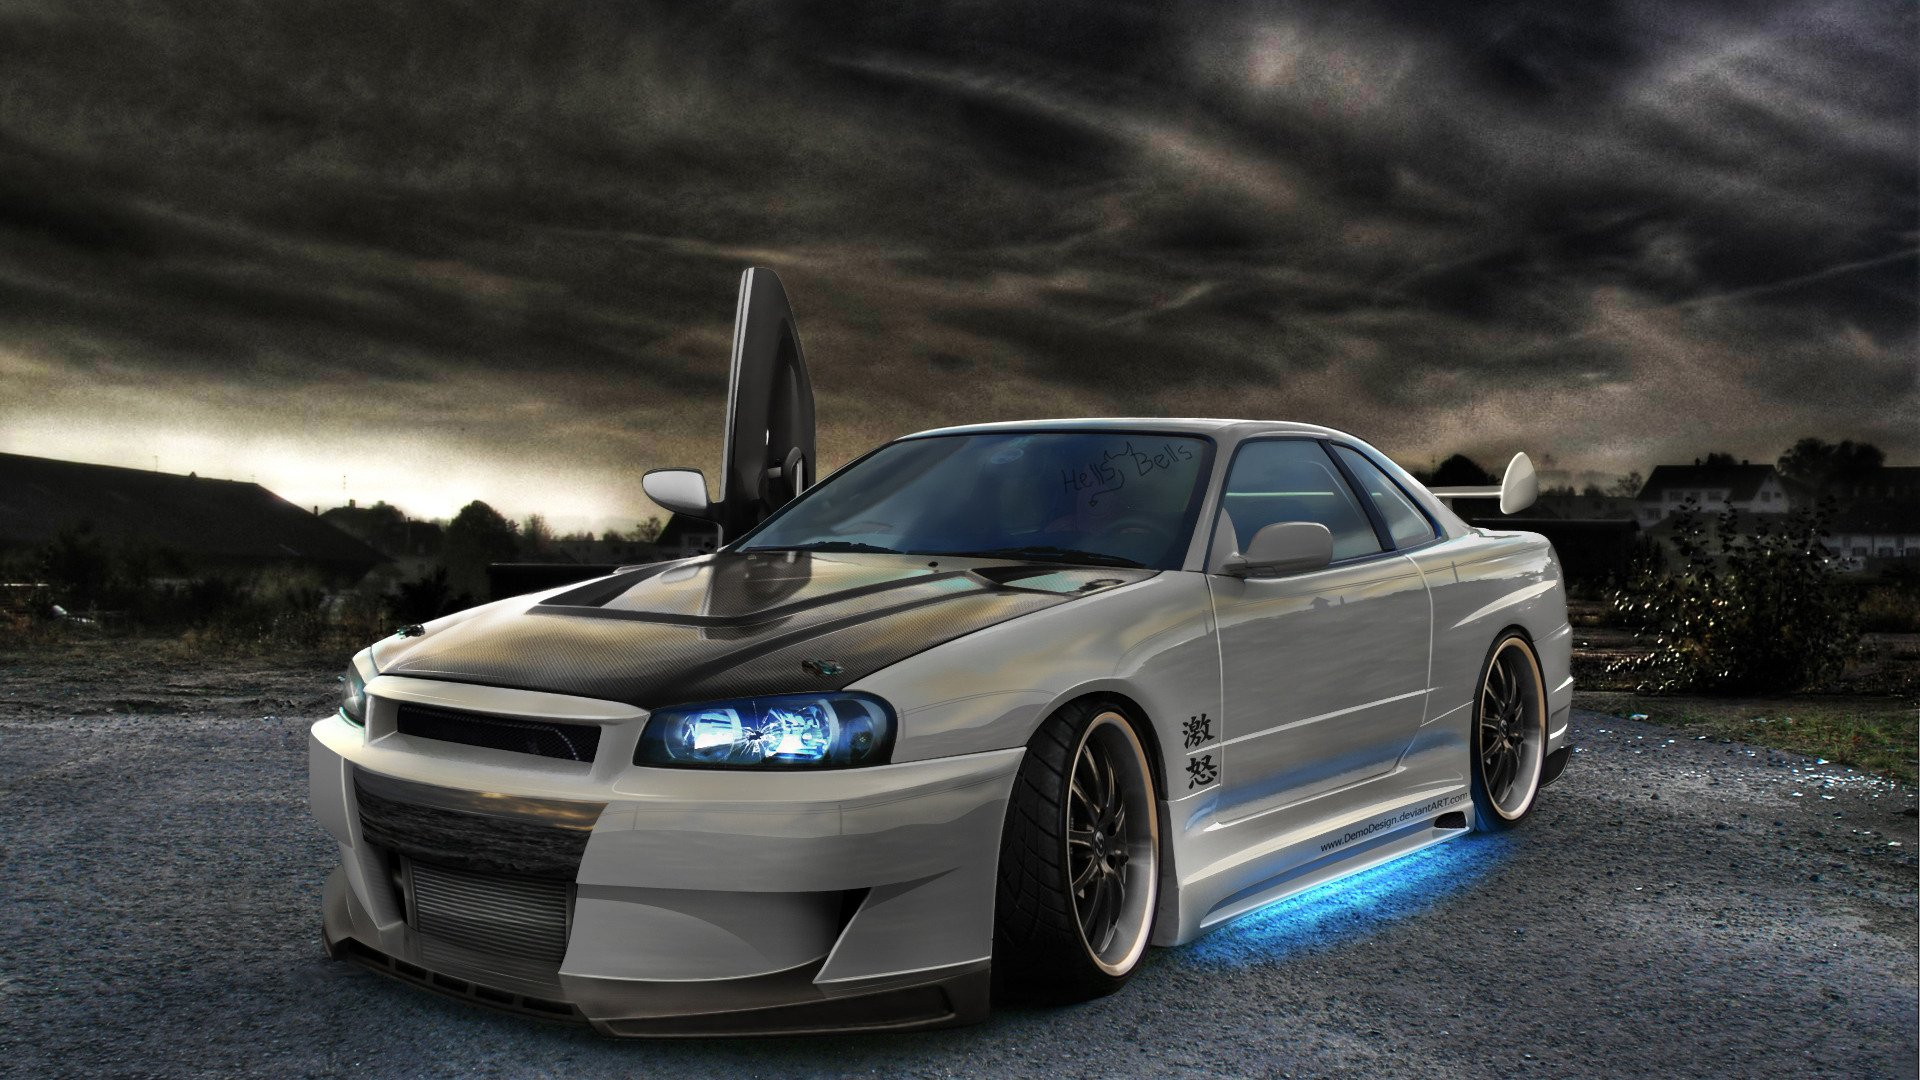 nissan skyline gtr r34 wallpaper 1920x1080 images. Black Bedroom Furniture Sets. Home Design Ideas